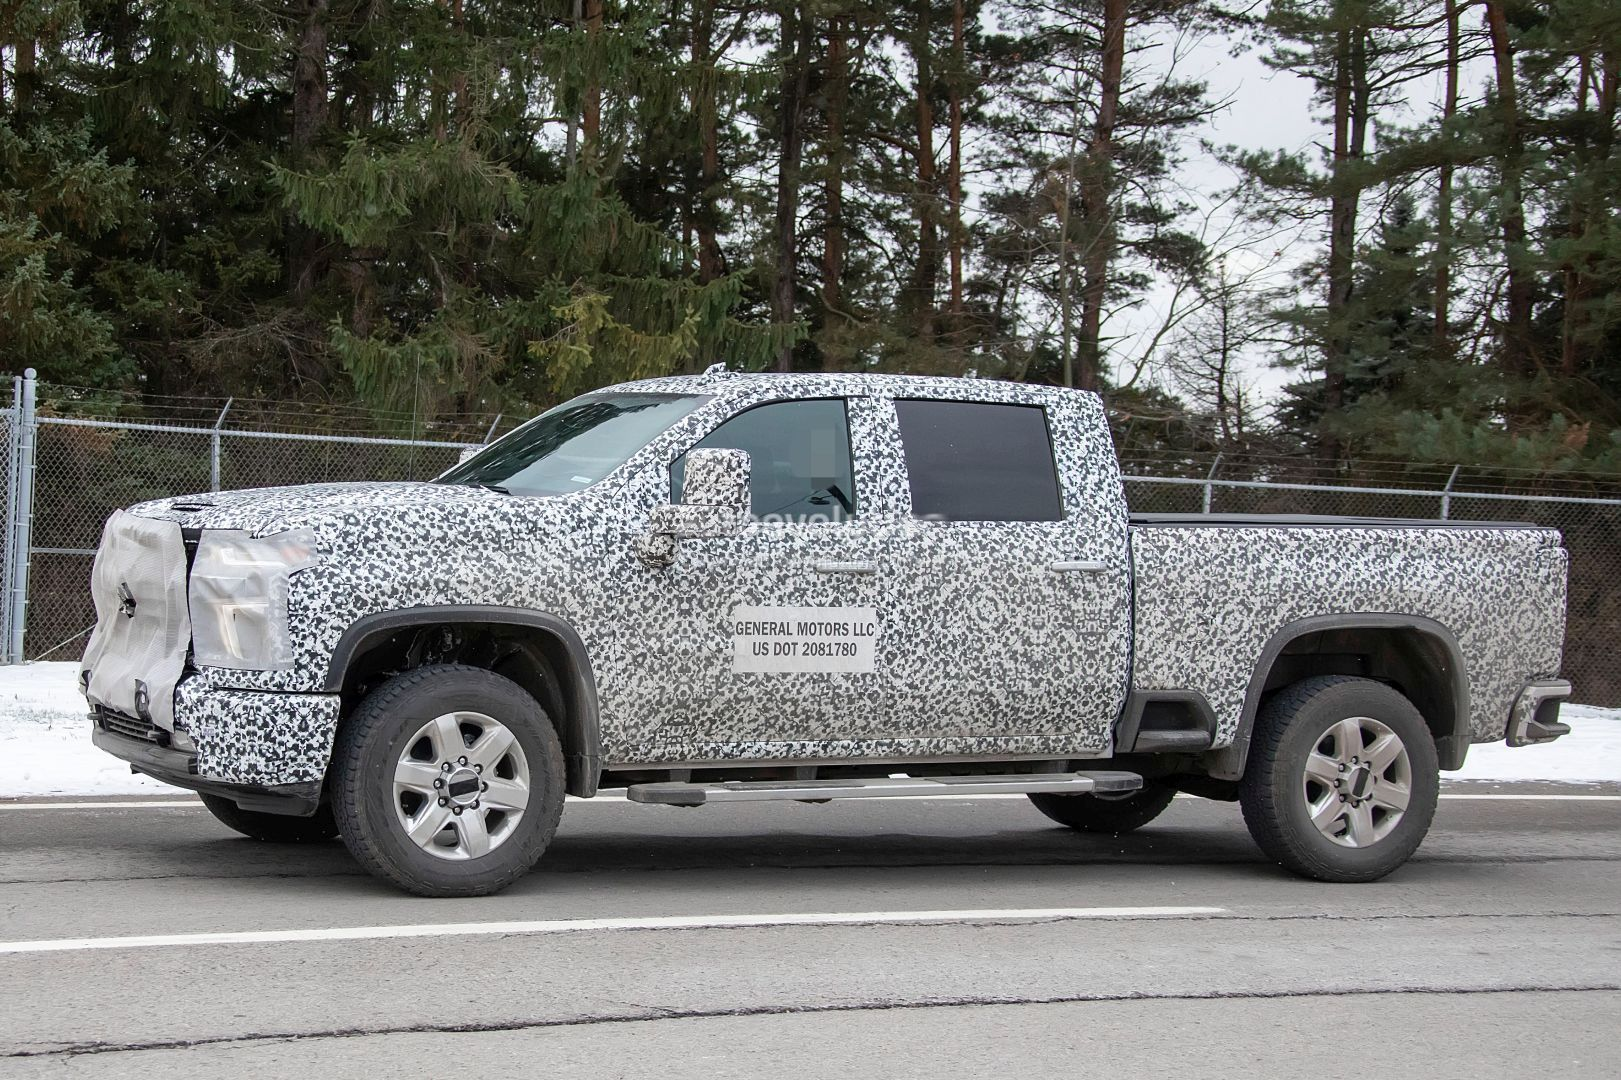 2020 Chevy Silverado Hd Prototype Shows Production Details New Side